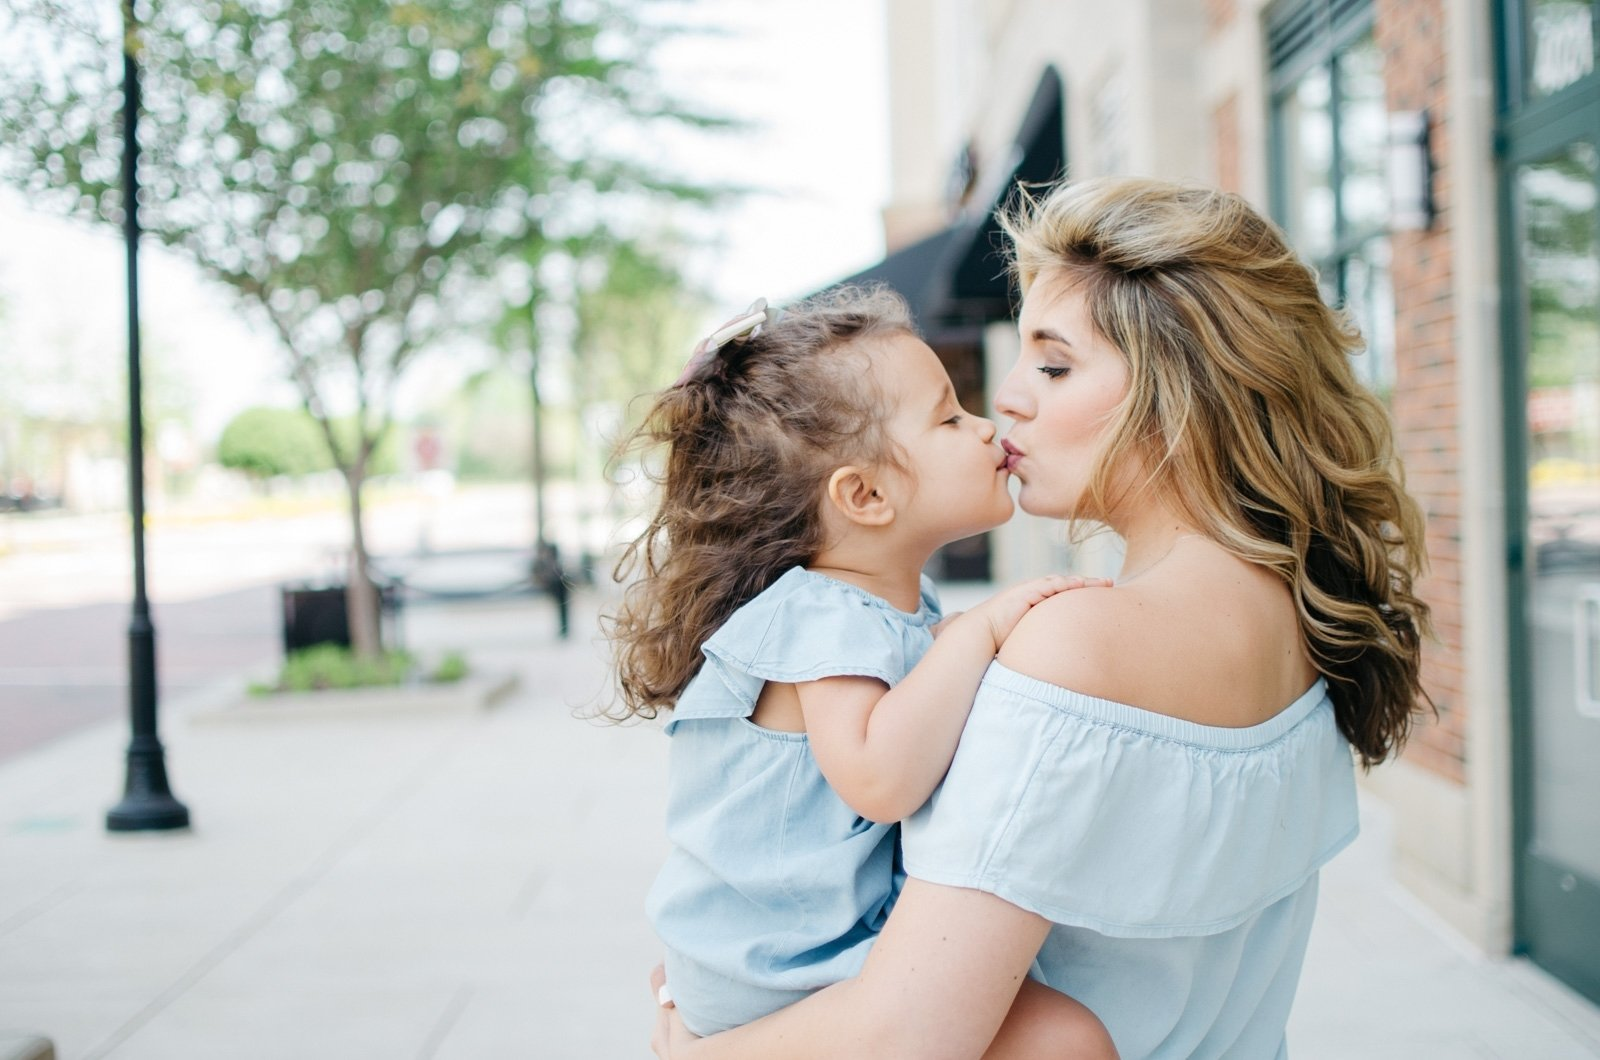 10 Spectacular Mother And Daughter Picture Ideas mother daughter style mothers day gift ideas lauren m 2020